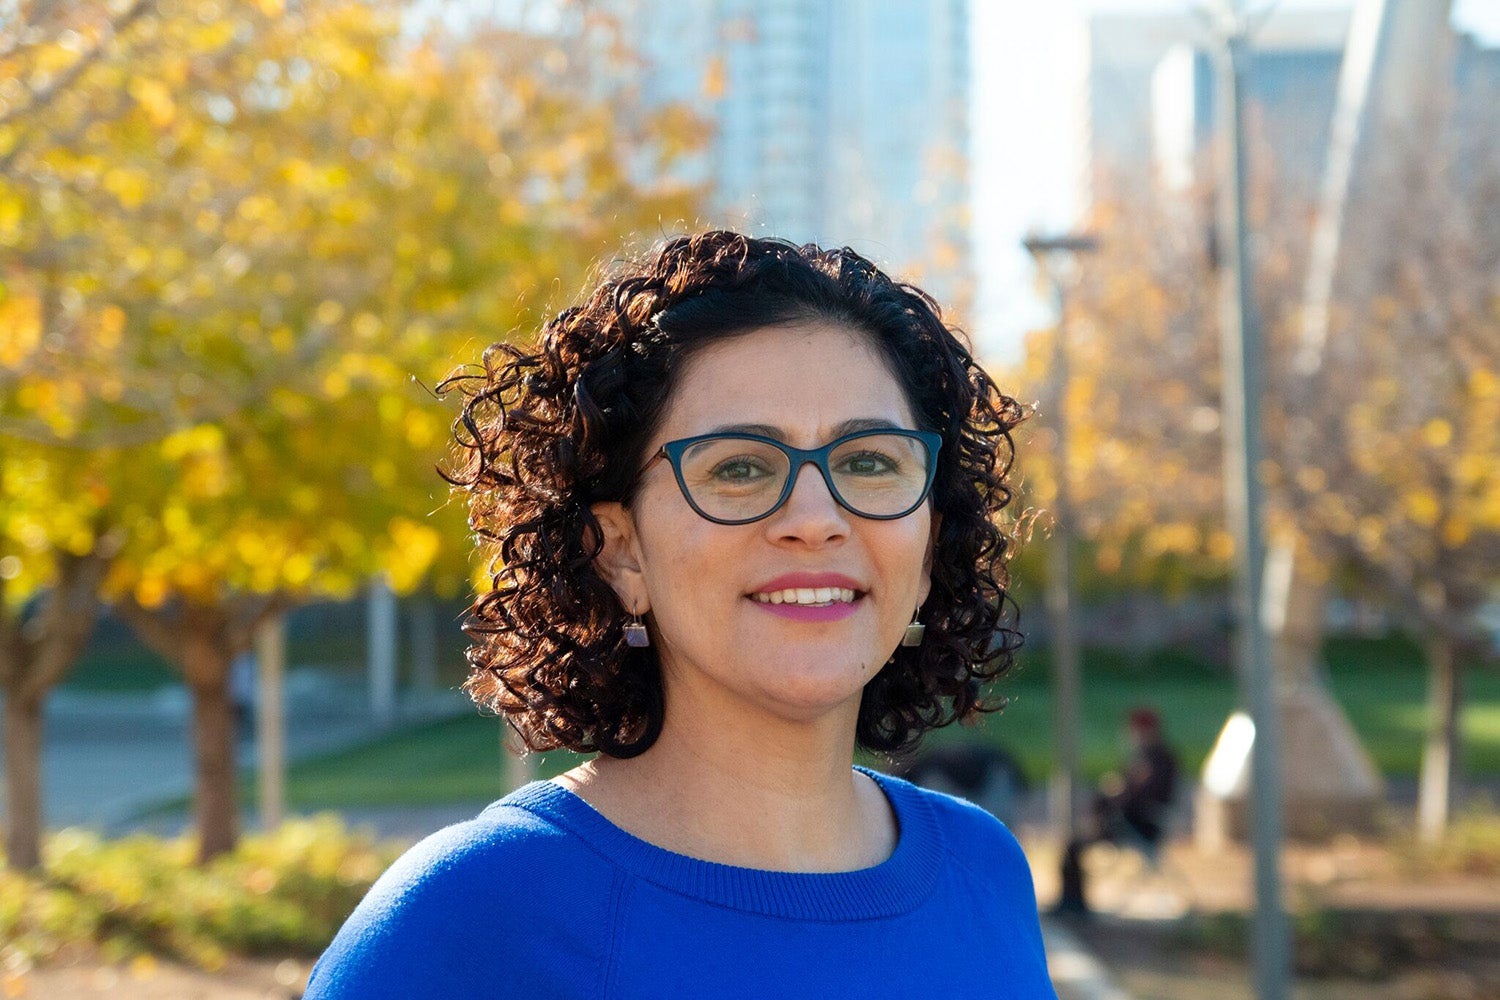 2018 Robert Wood Johnson Foundation Health Policy Research Scholar, Mónica Gutiérrez.